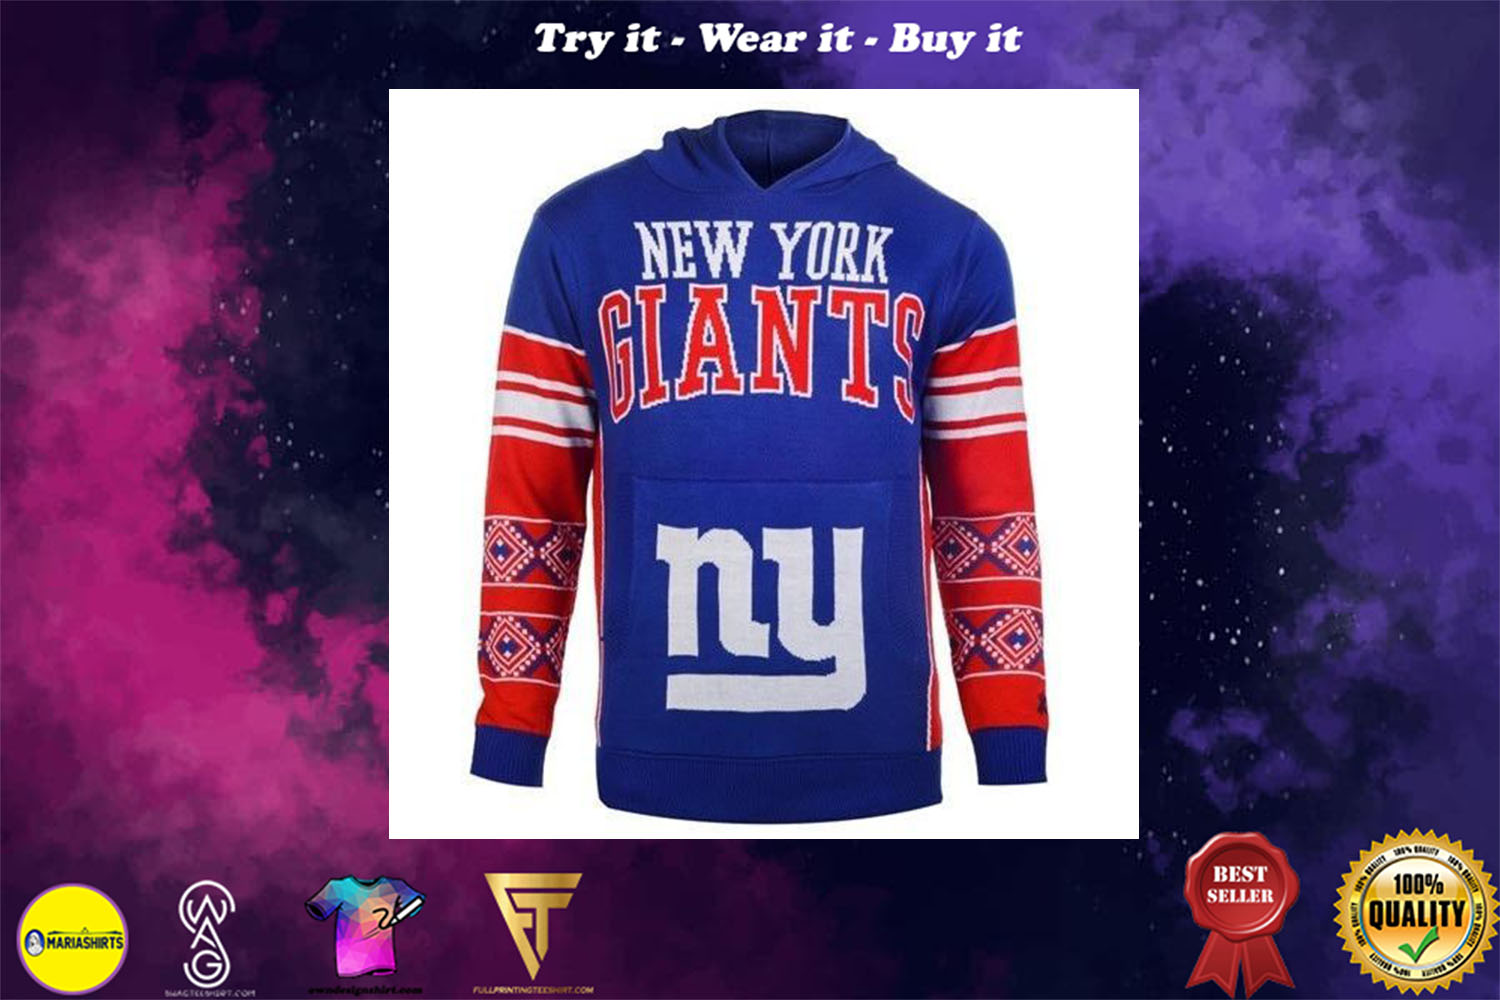 [special edition] the new york giants full over print shirt - maria